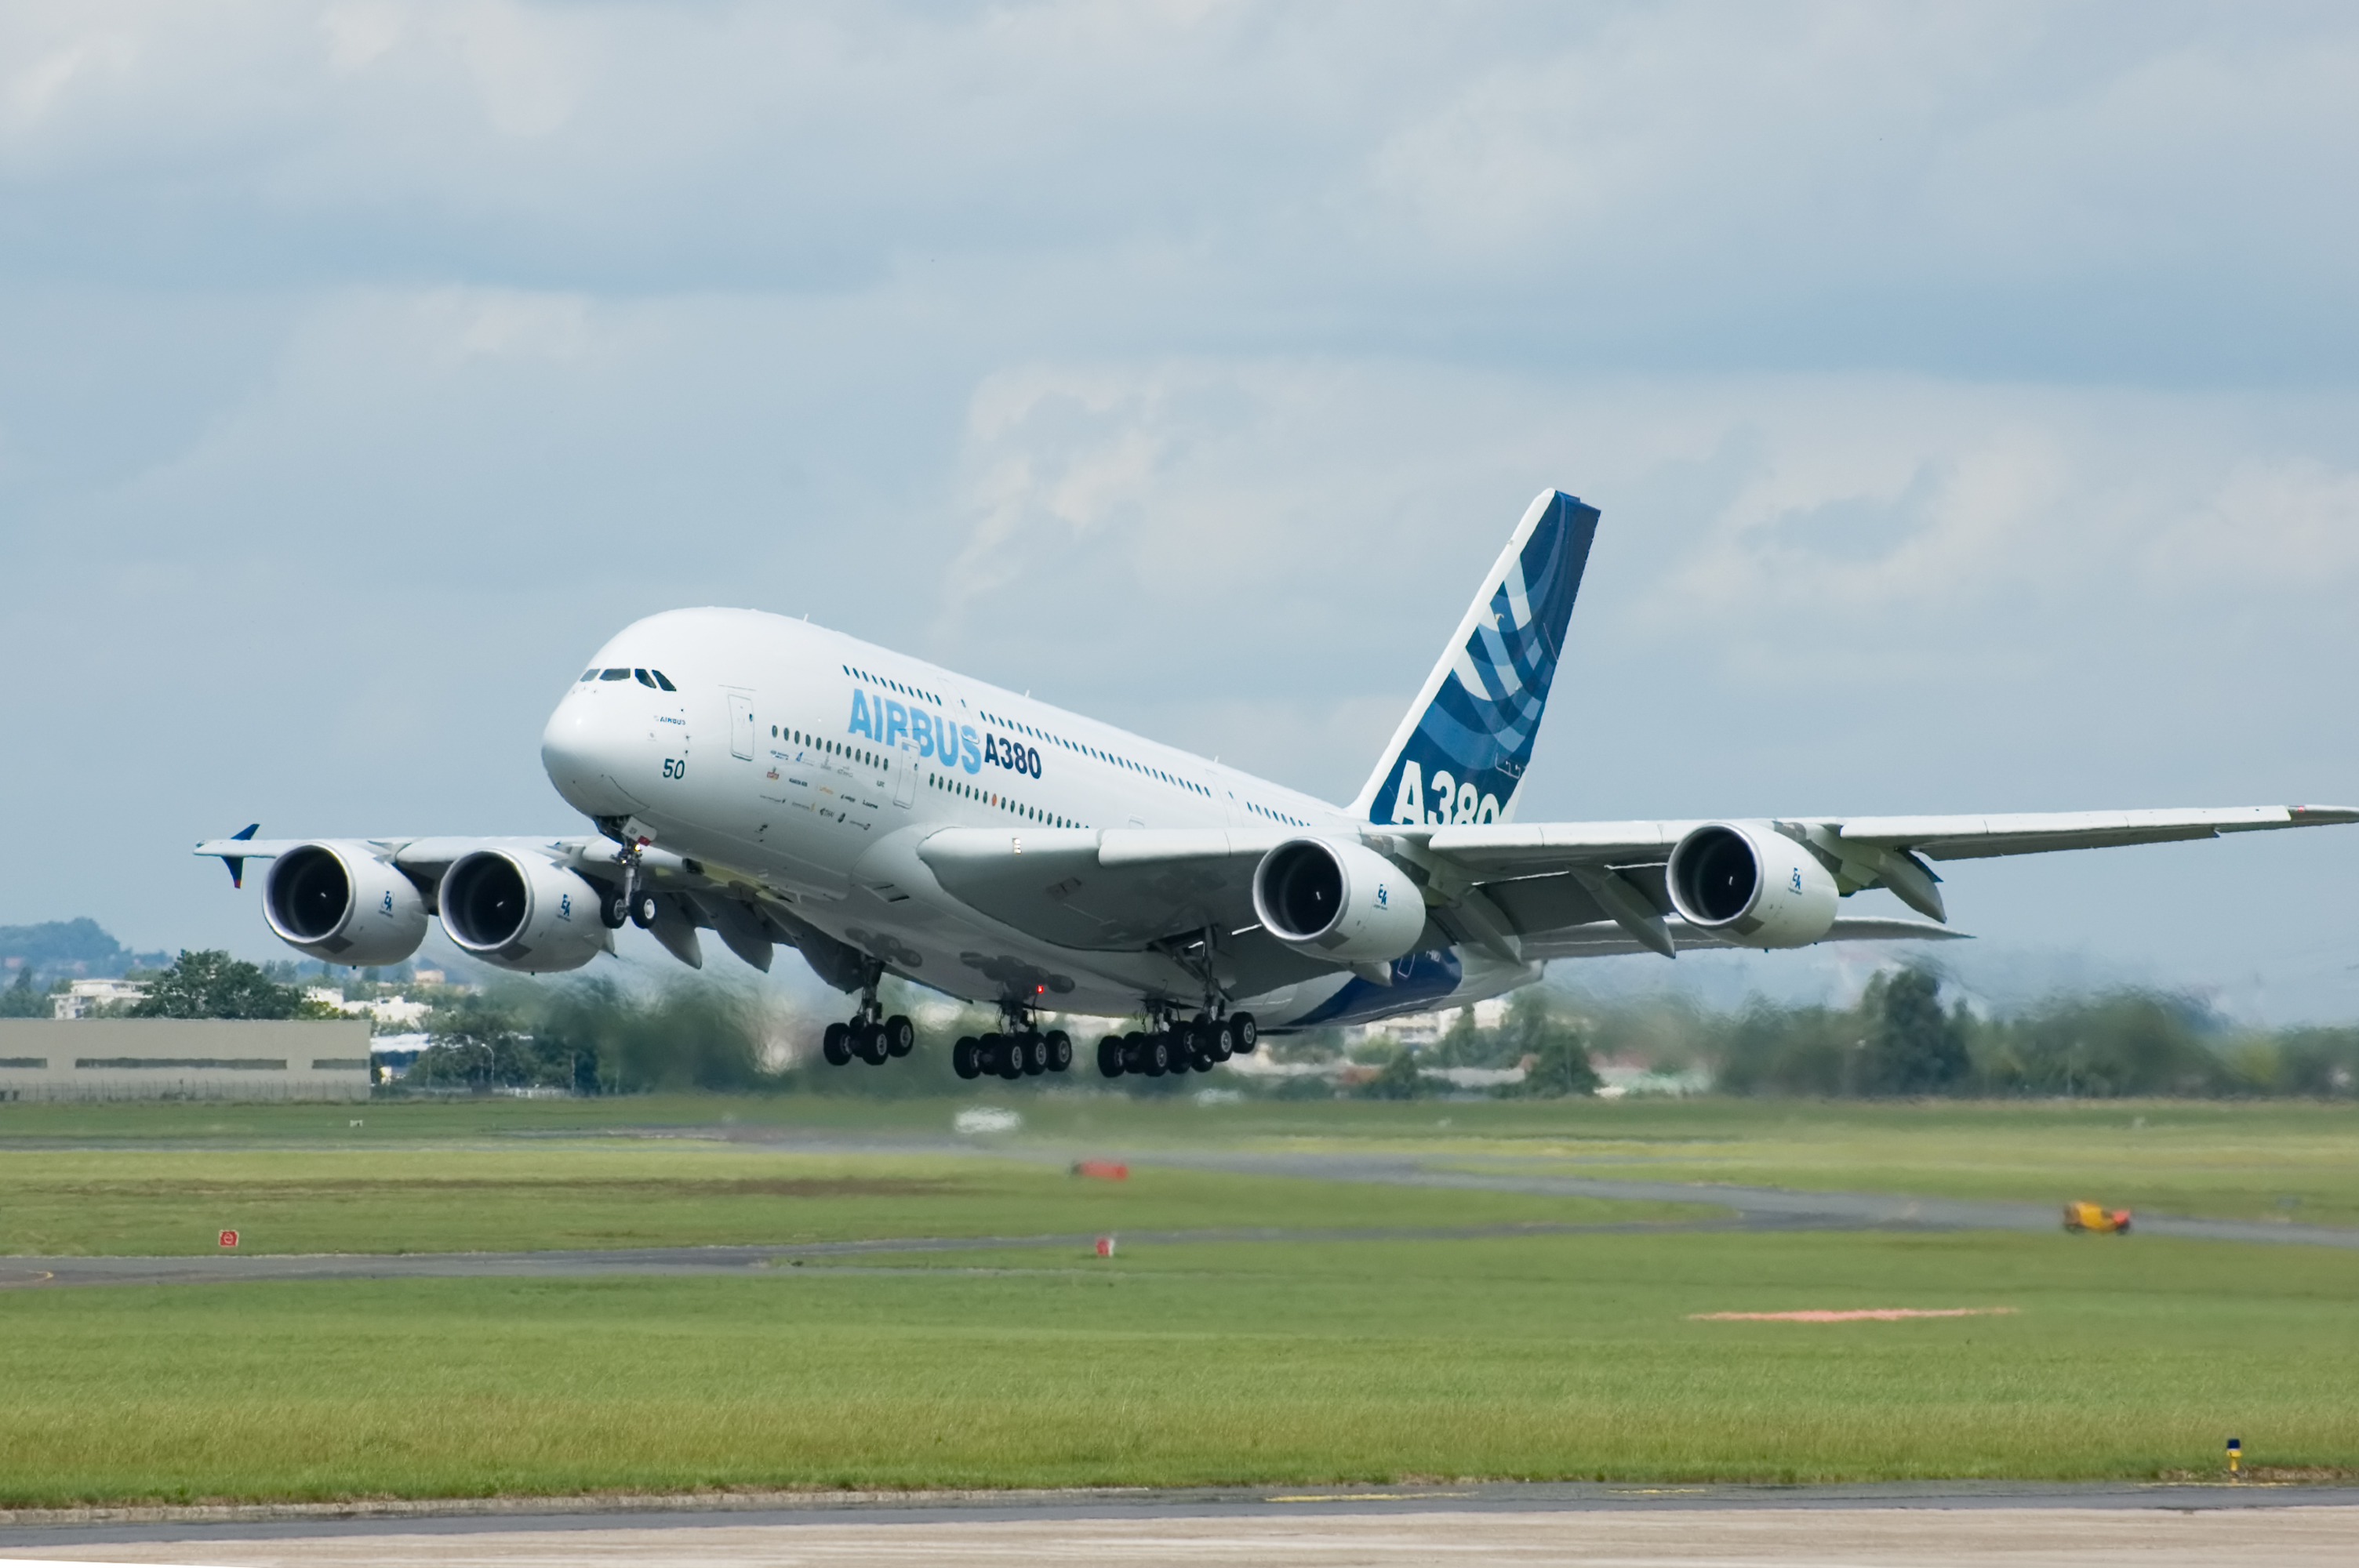 Airbus A380 taking off during Paris Air Show 2007